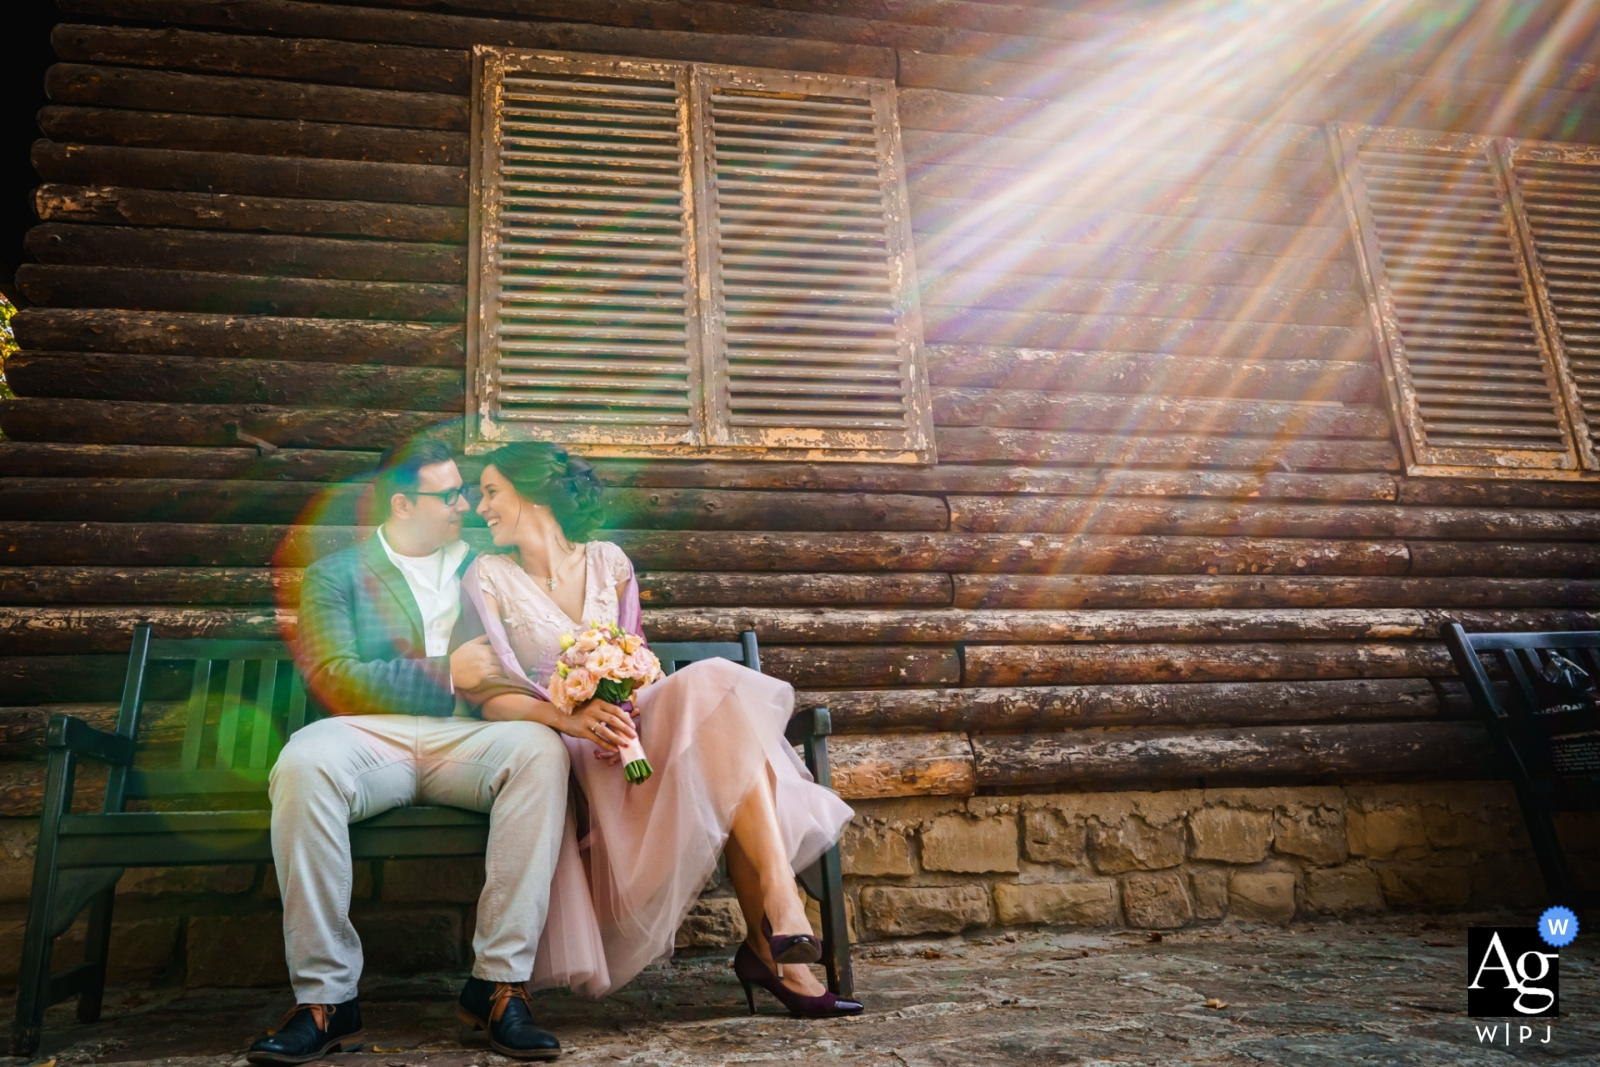 Vrana park and residence   Portrait of the Couple with Love and Sunshine